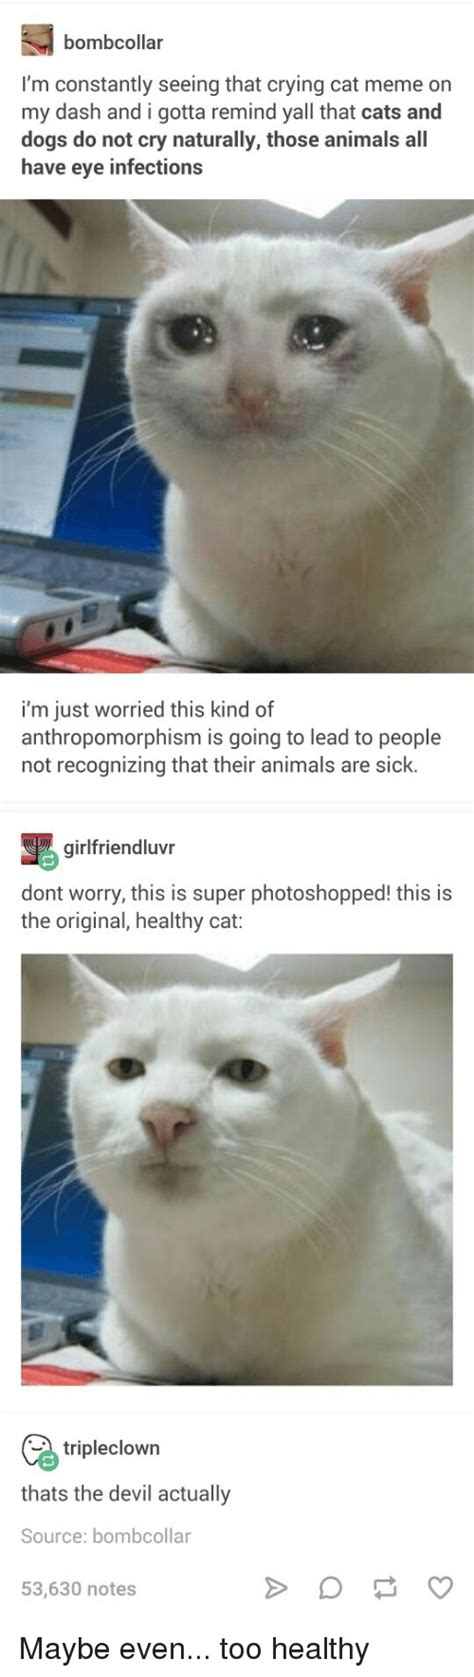 Crying Cat Memes Is The New Craze Among Catizens 30 Crying Cat